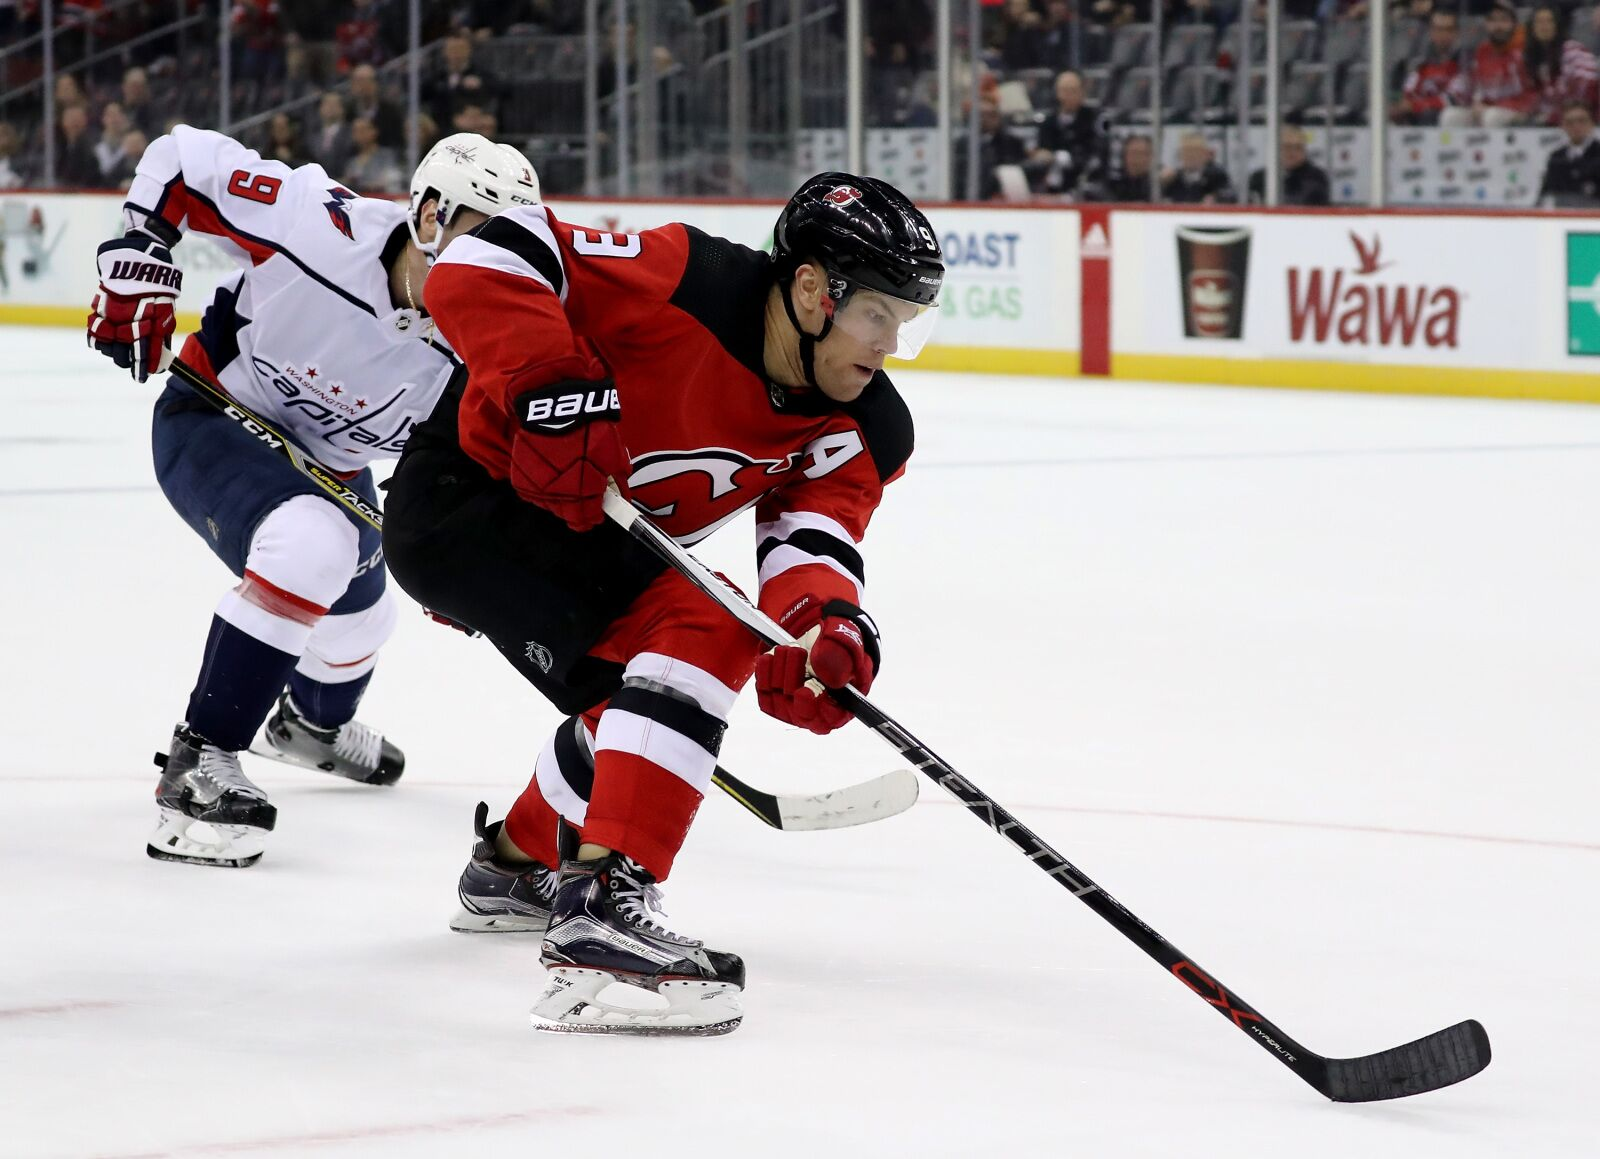 NEWARK, NJ - JANUARY 18: Taylor Hall #9 of the New Jersey Devils heads for the net and scores the game winning goal as Dmitry Orlov #9 of the Washington Capitals defends in the overtime period on January 18, 2018 at Prudential Center in Newark, New Jersey.The New Jersey Devils defeated the Washington Capitals 4-3 in overtime. (Photo by Elsa/Getty Images)